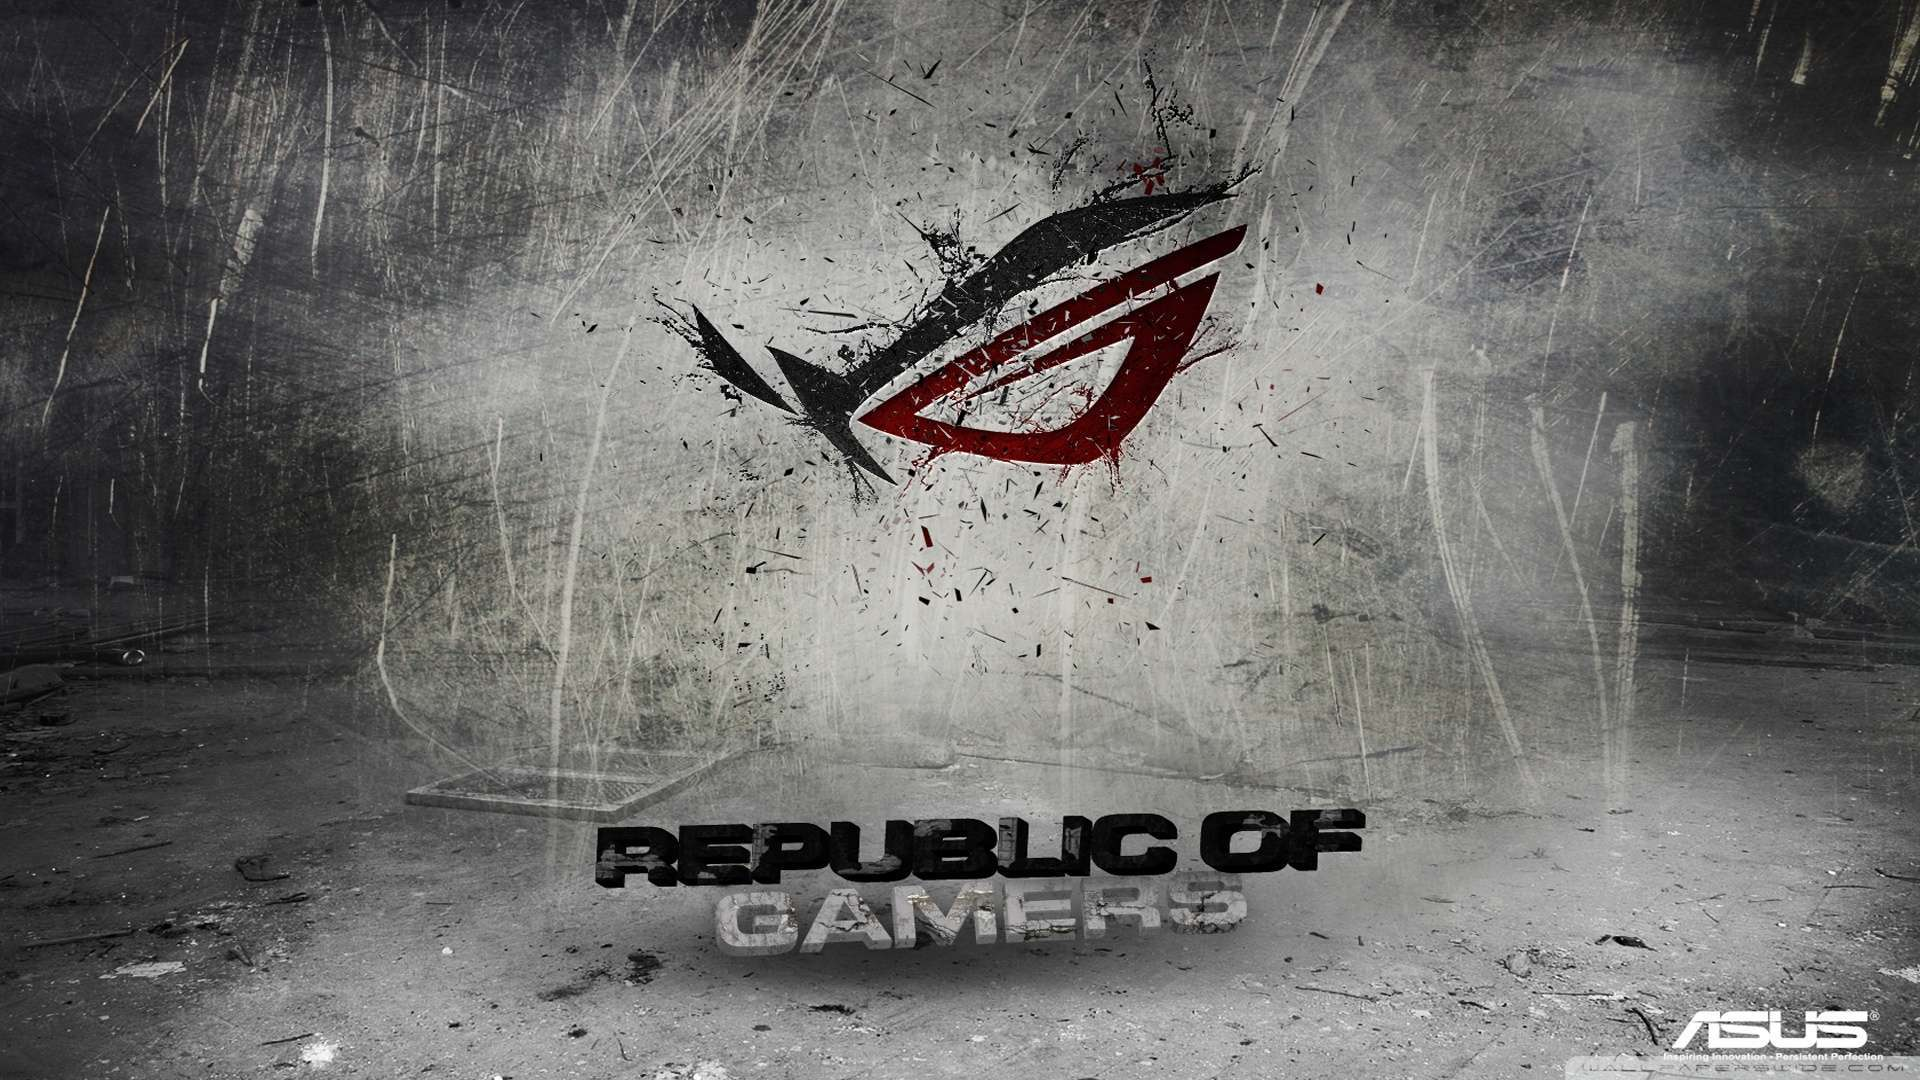 Download now Asus Republic Of Gamers Background Wallpaper 1080p HD 1920x1080